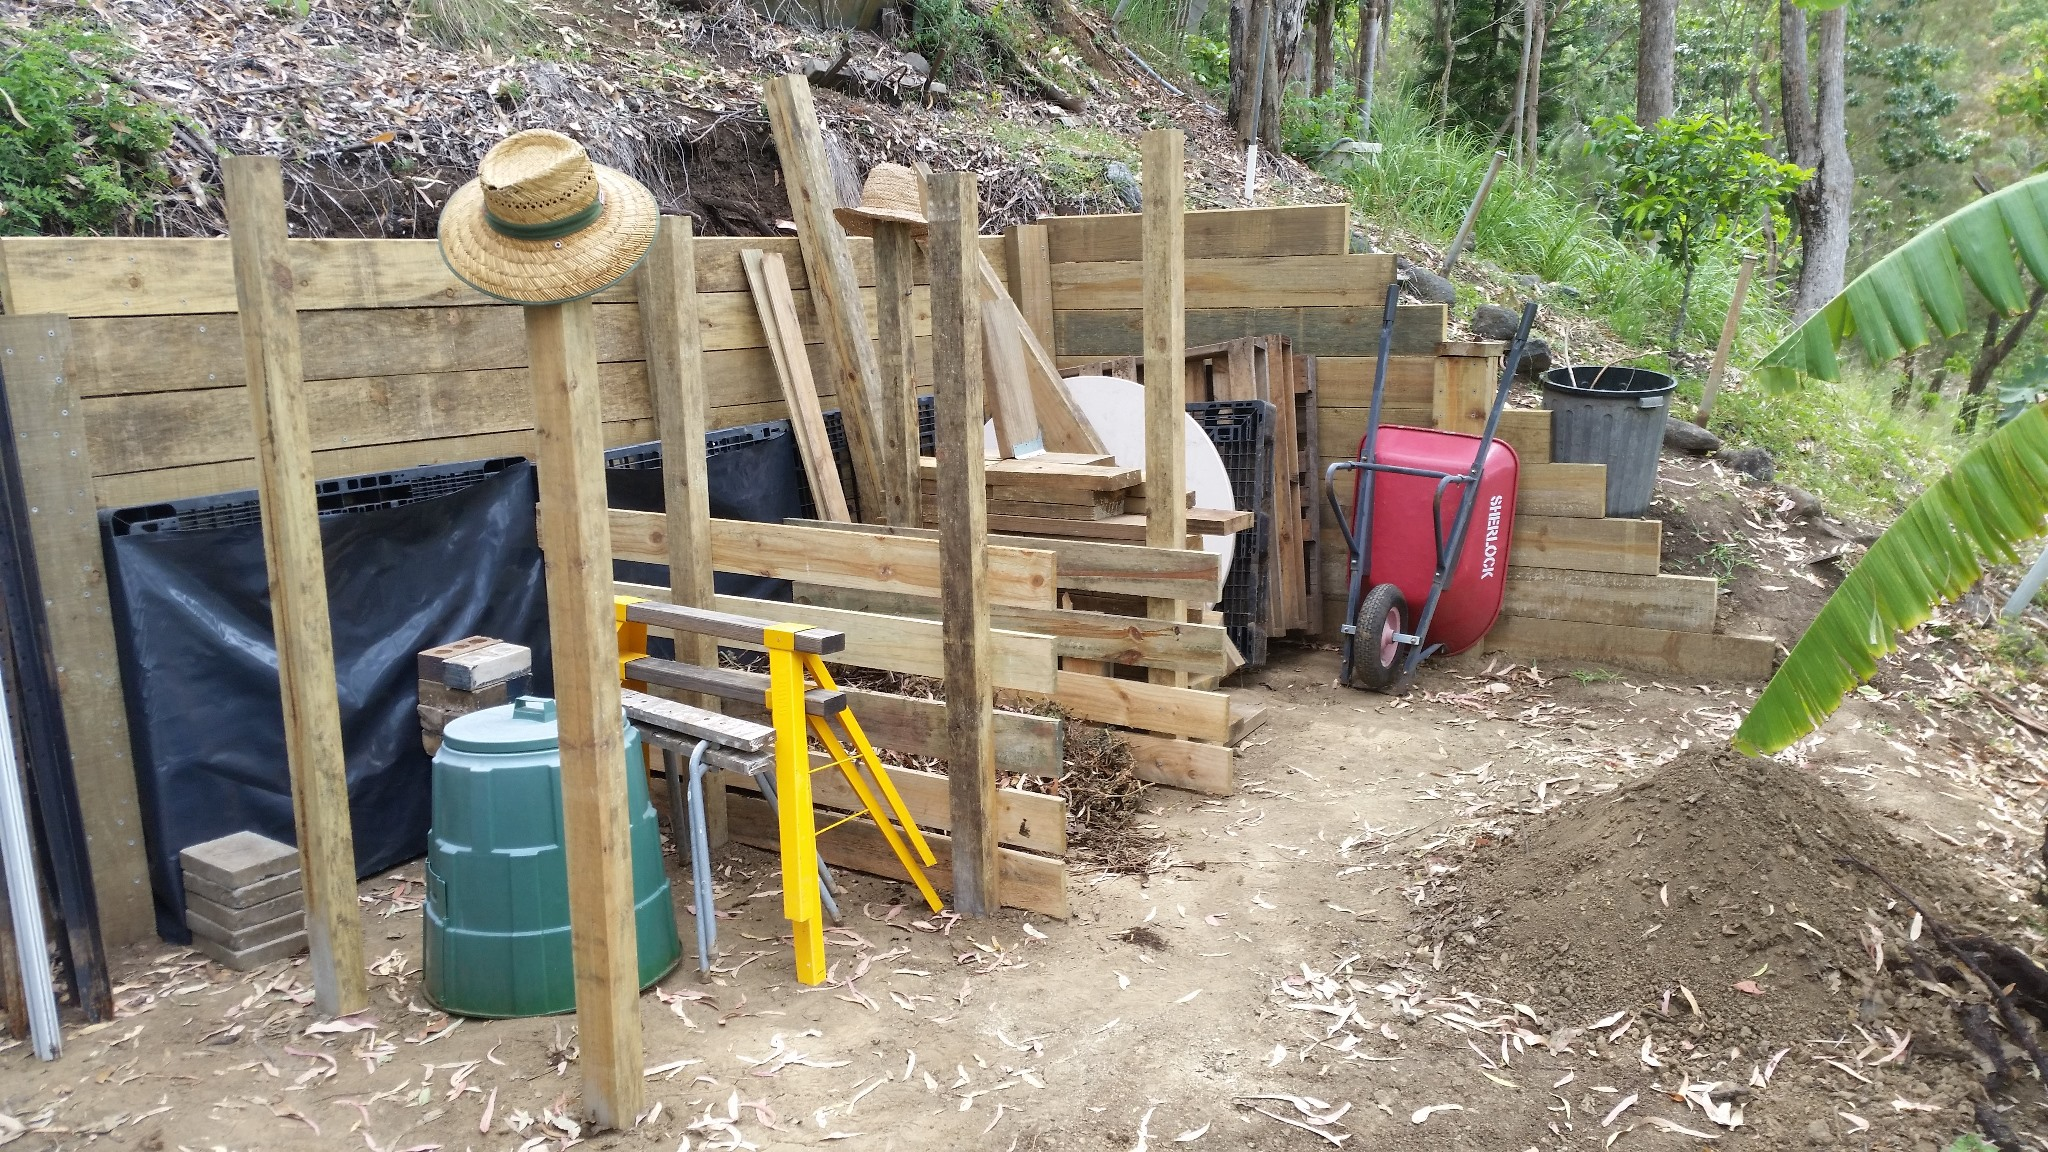 Compost and Storage Bins - Mostly finished